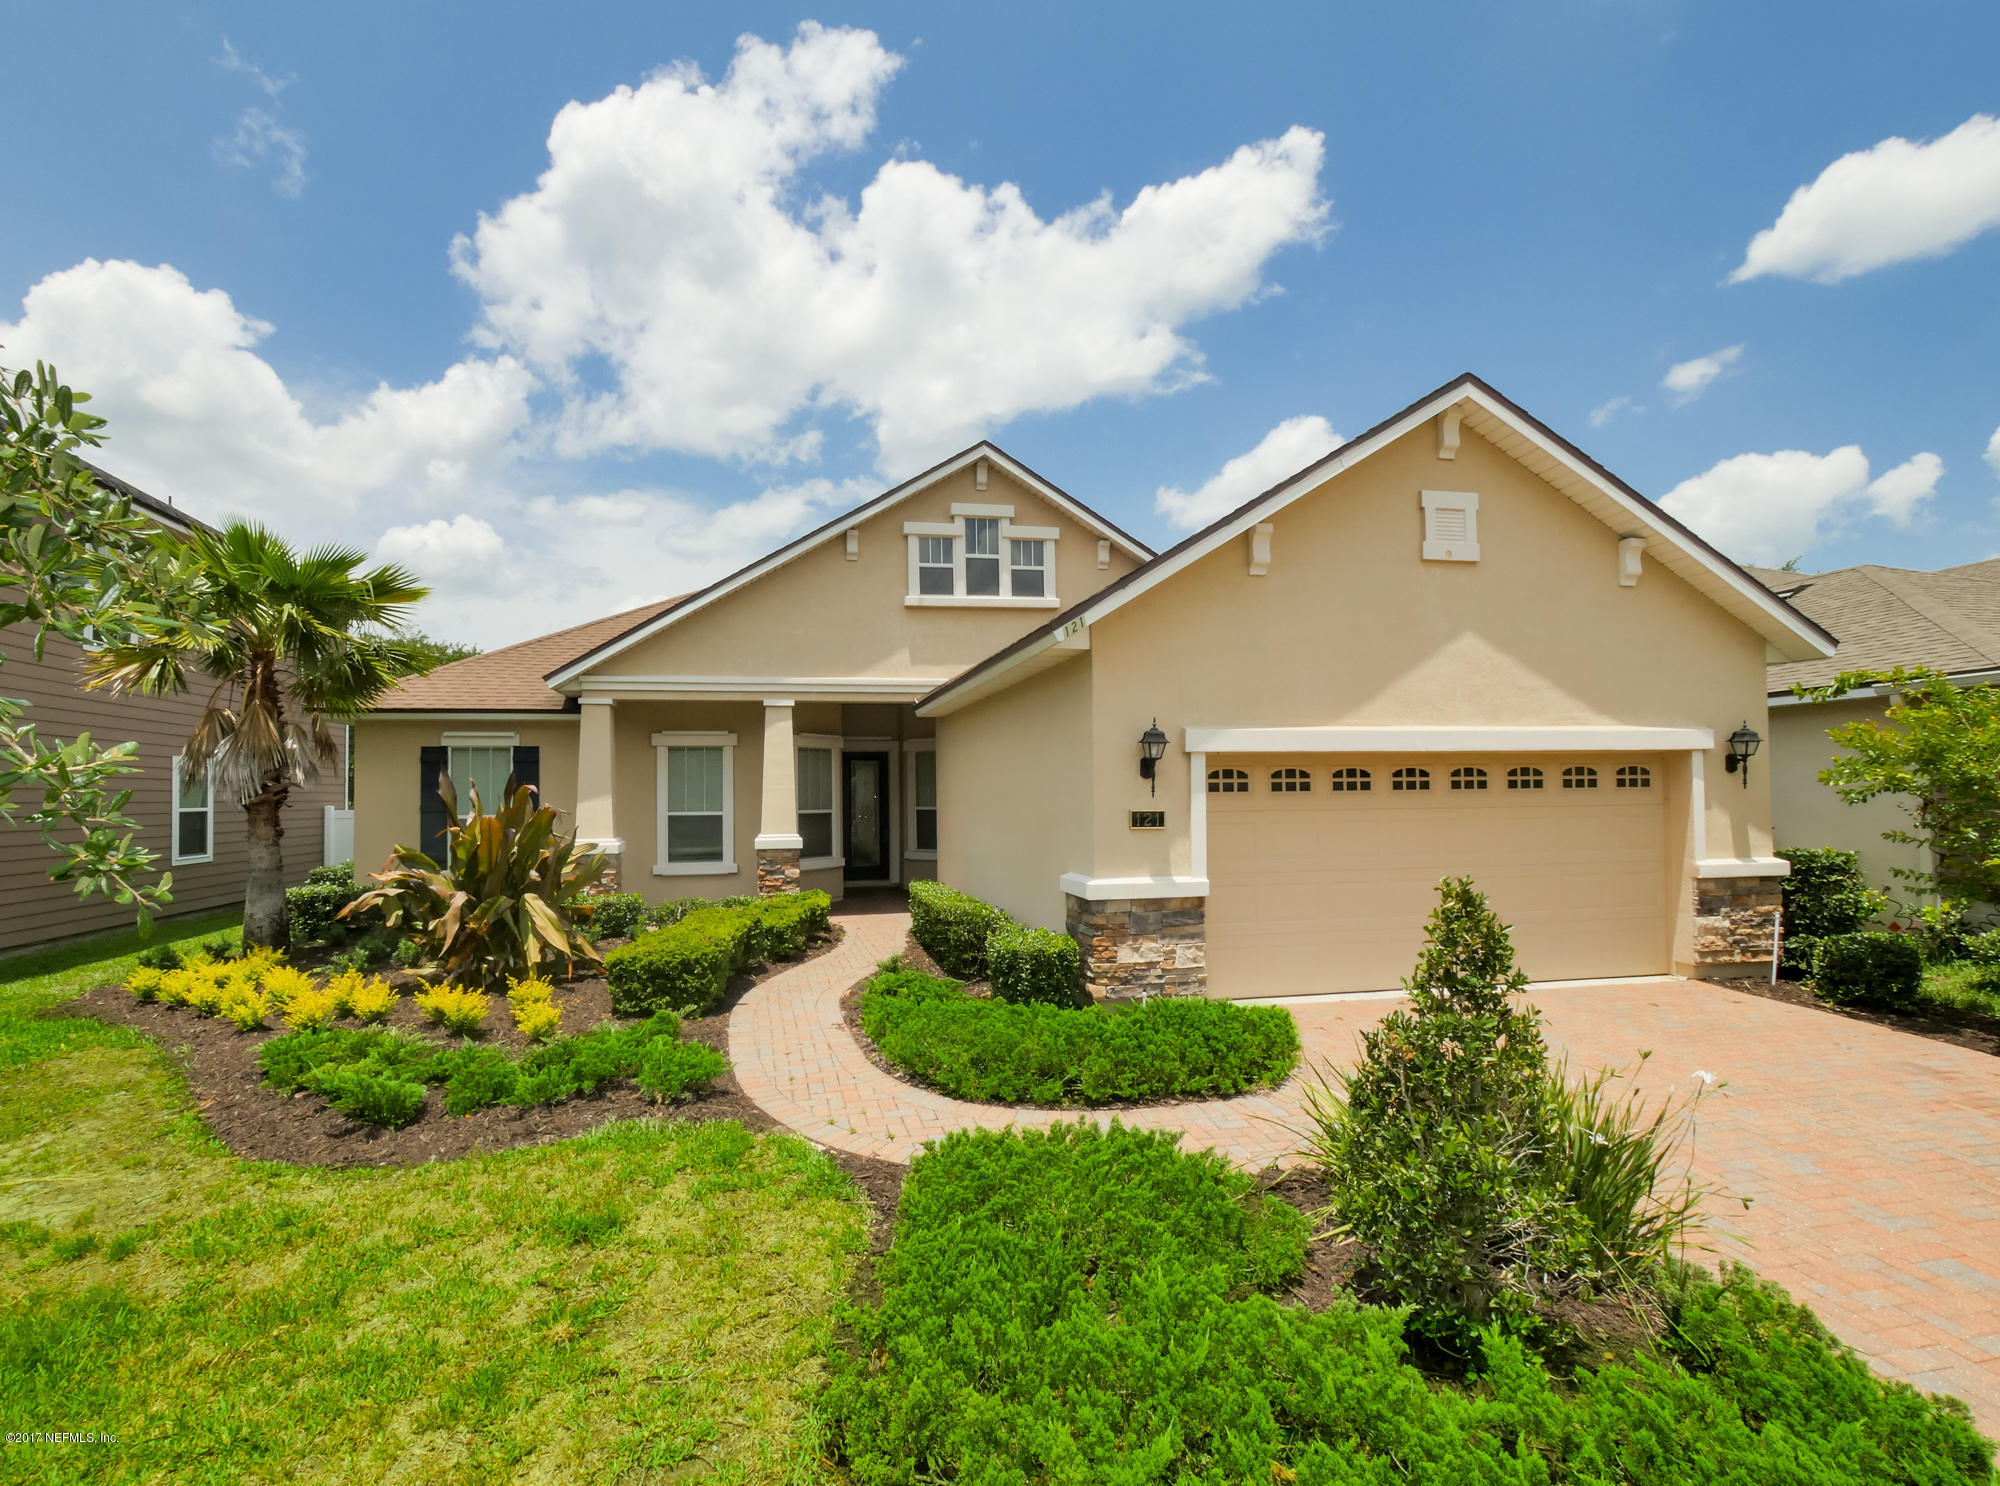 121 AMHERST, PONTE VEDRA, FLORIDA 32081, 4 Bedrooms Bedrooms, ,2 BathroomsBathrooms,Residential - single family,For sale,AMHERST,985653